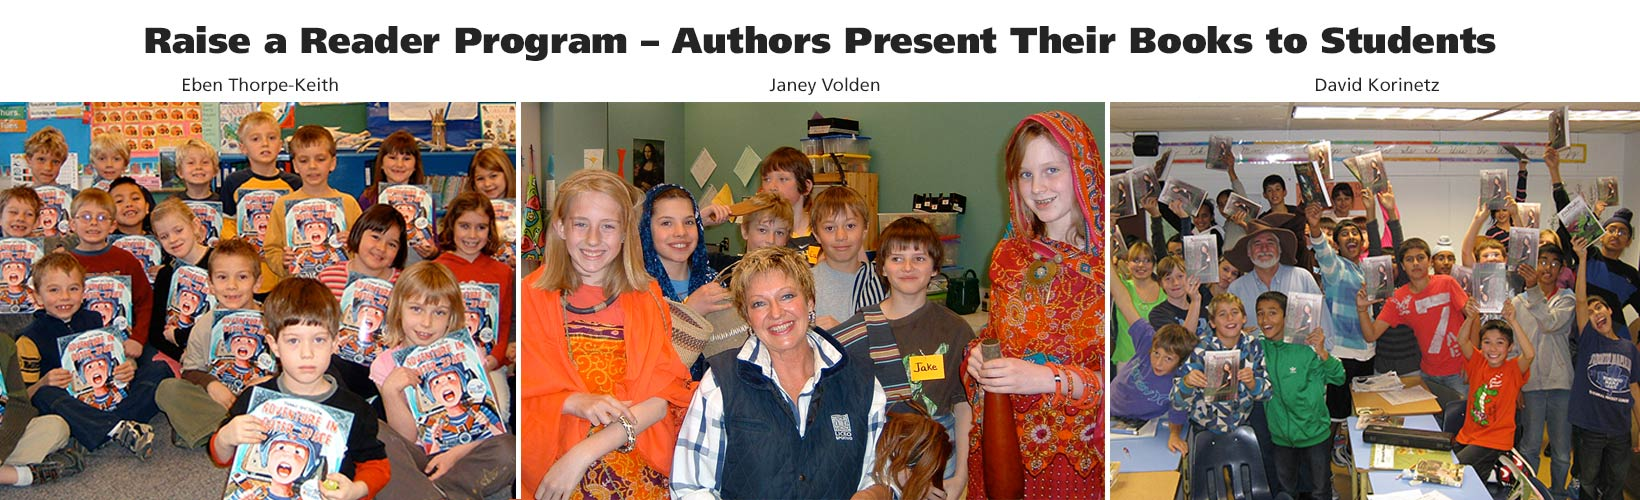 Raise a Reader – Authors Present Their Books to Students